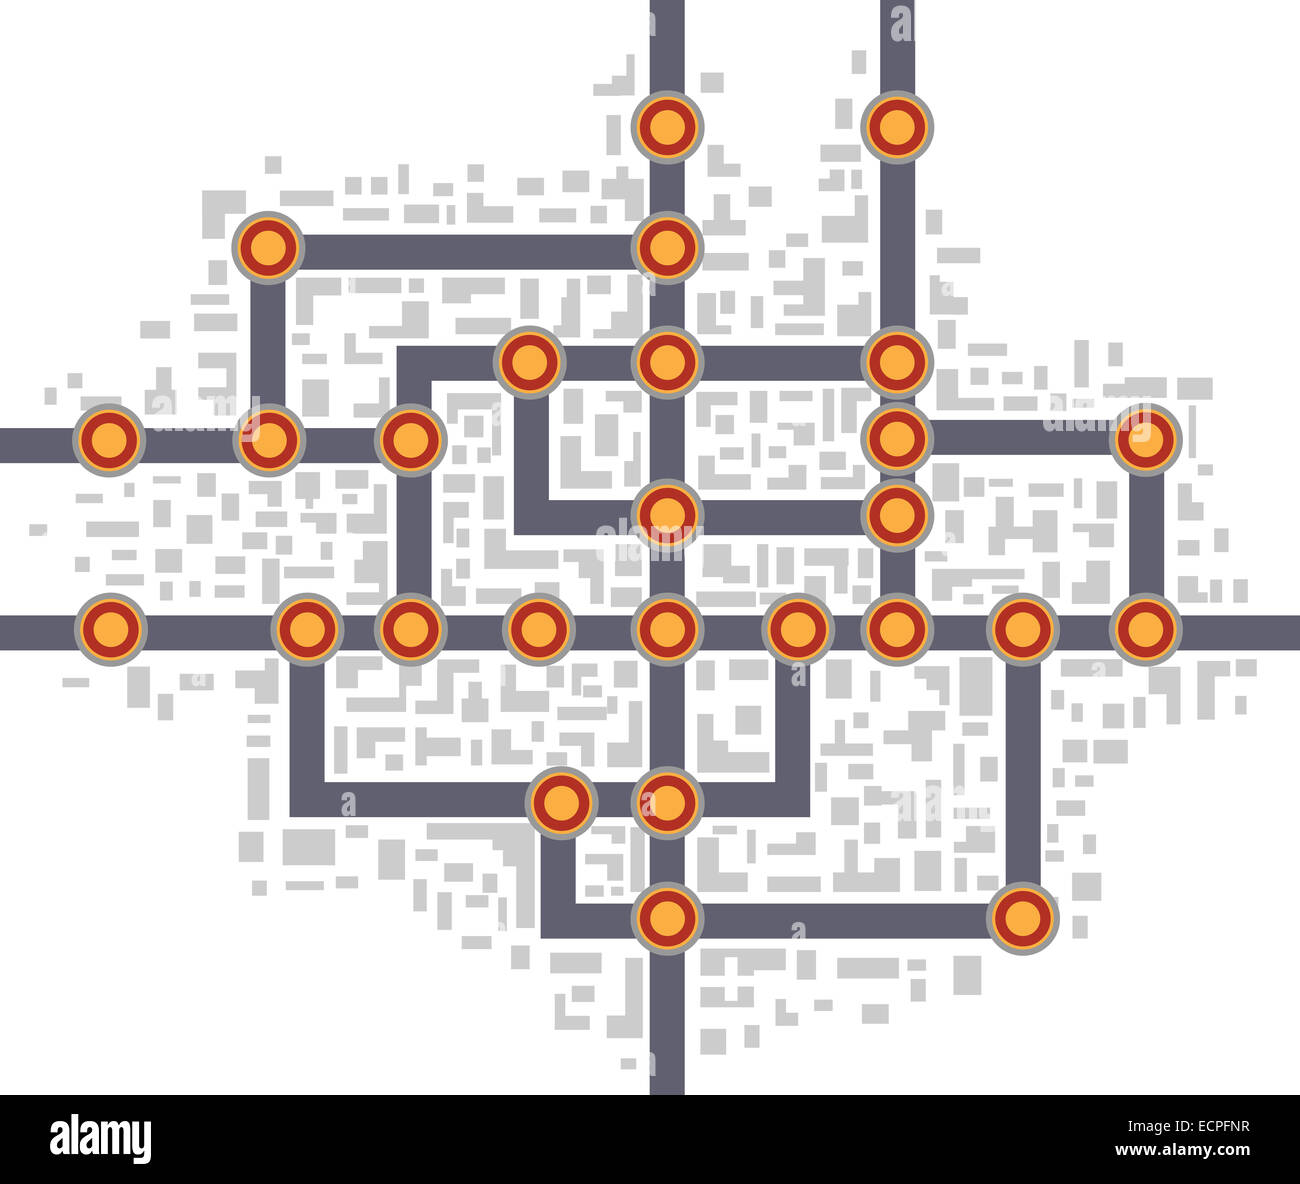 Subway Diagram Stock Photos Images Alamy Wiring Schematic Colorful Abstract Map Image